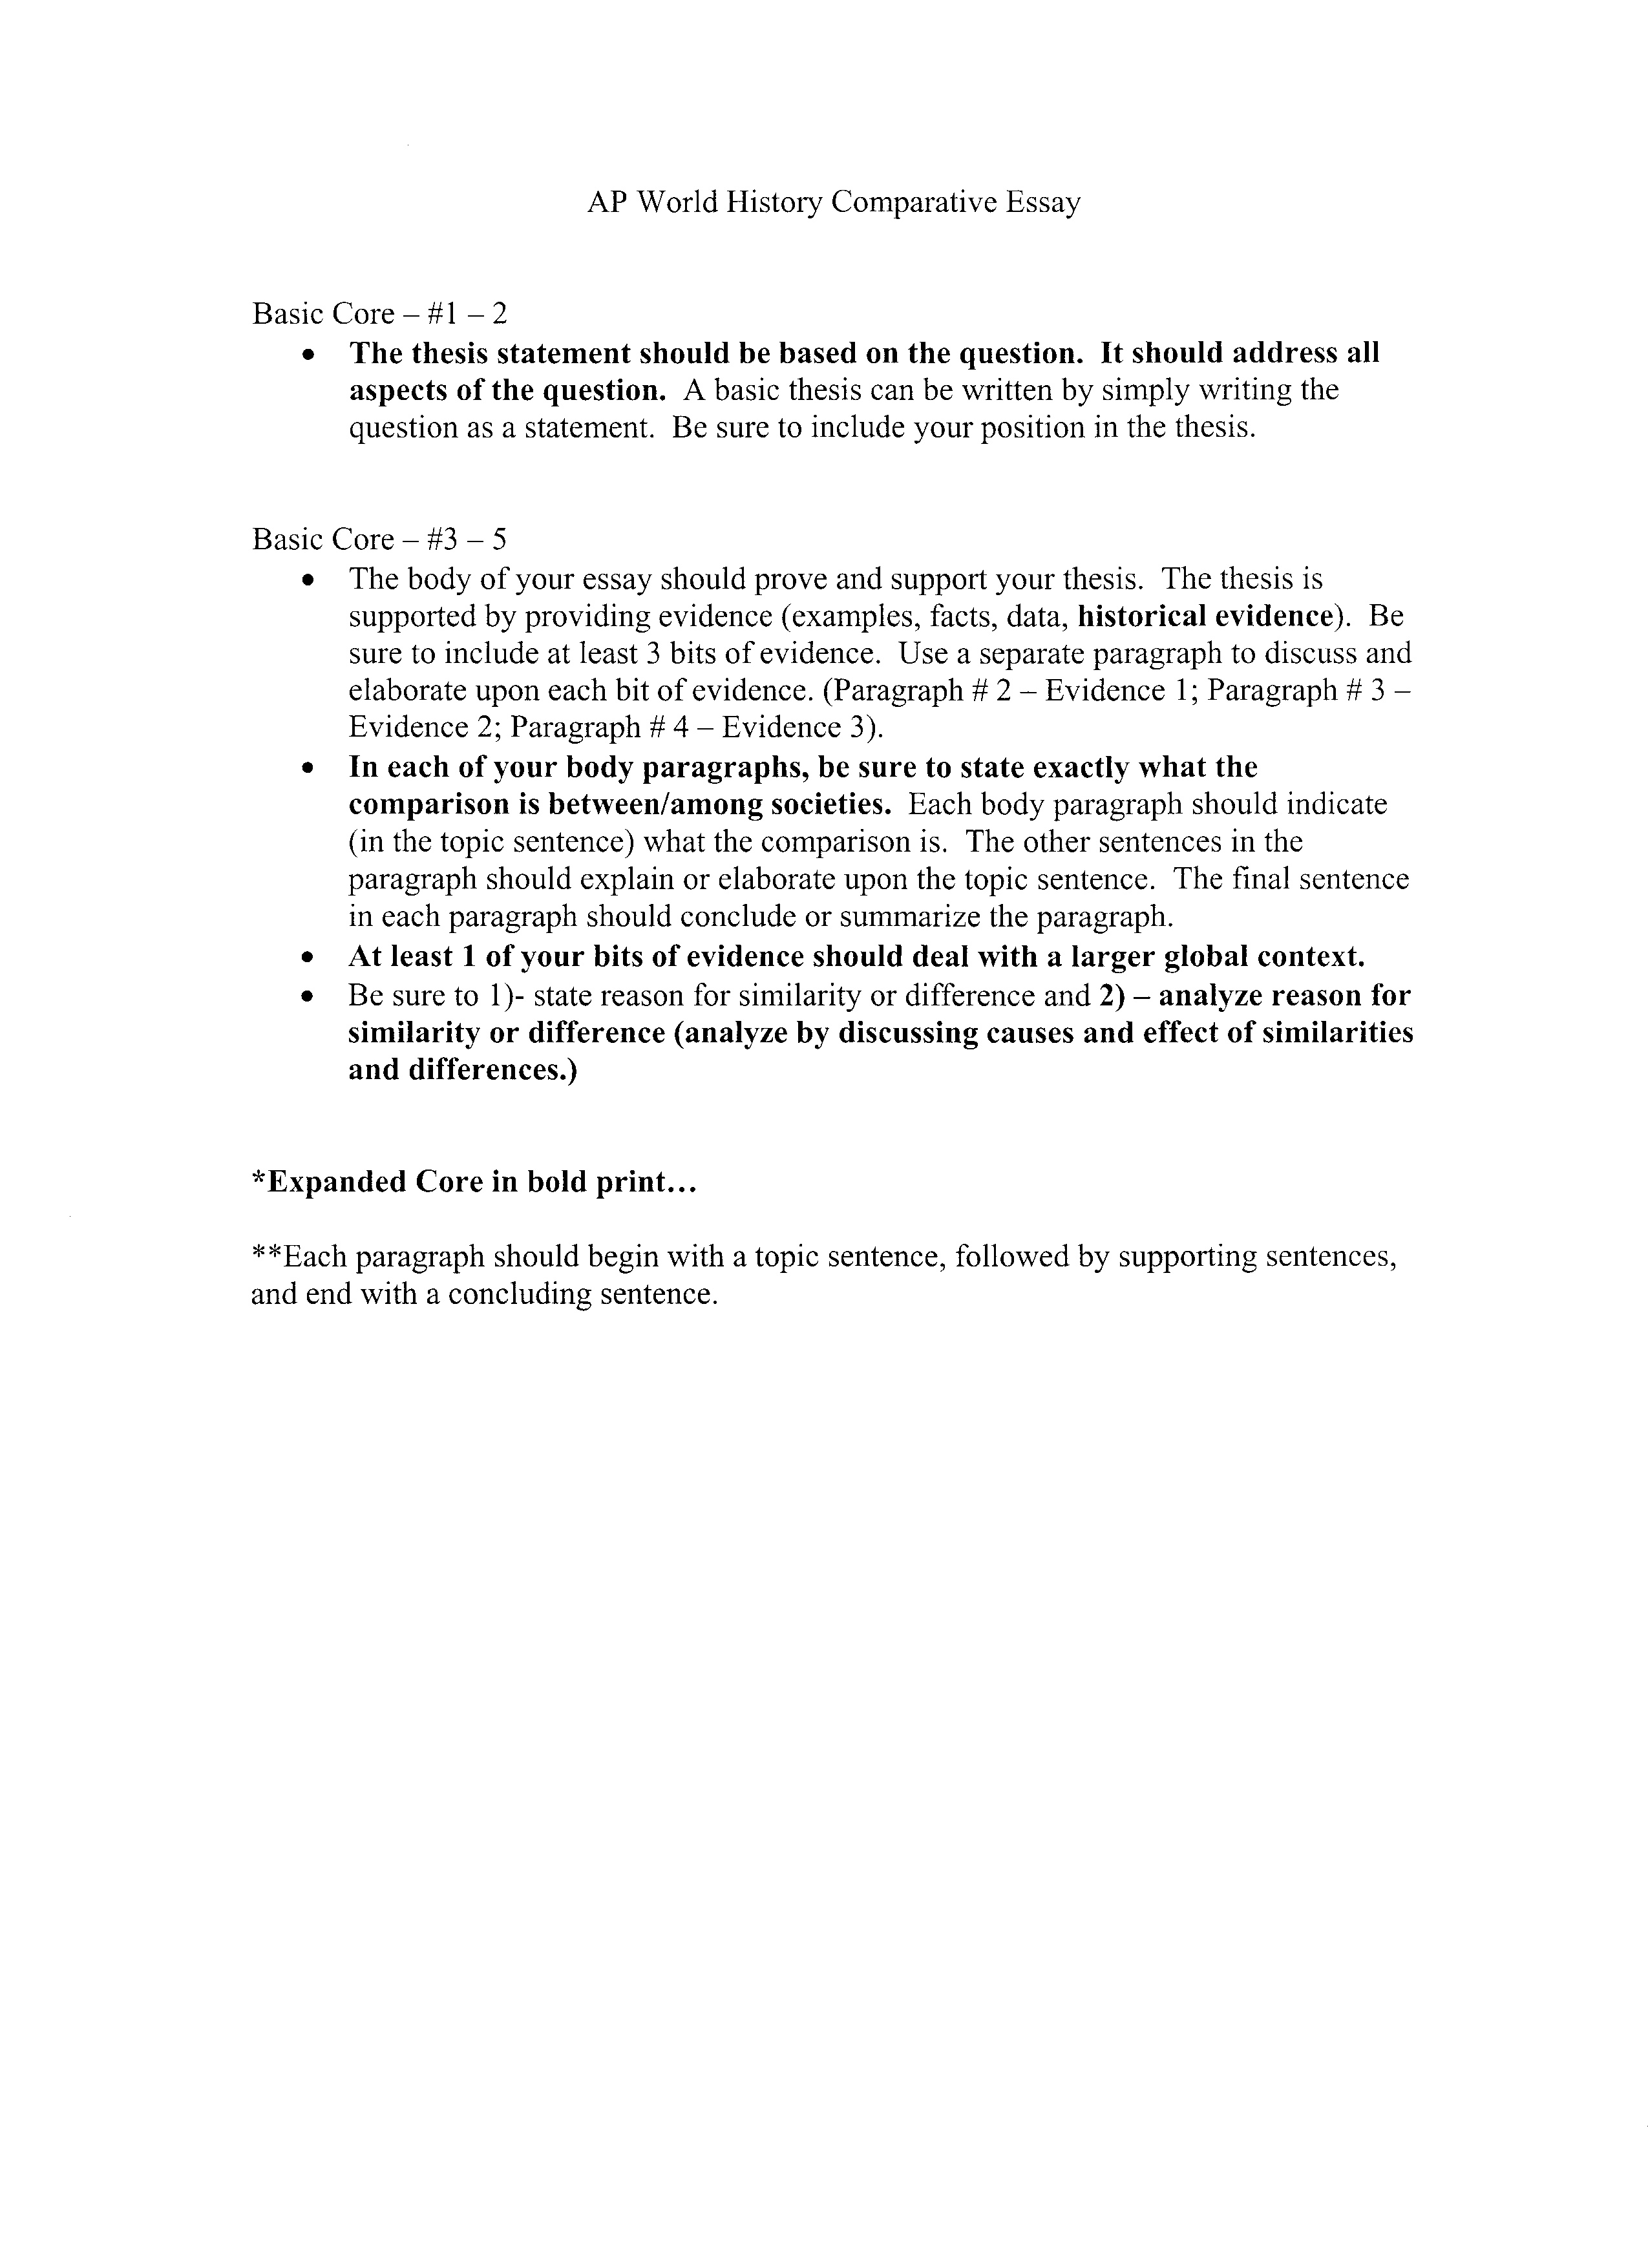 Hiv Essay Paper Compare And Contrast The Reasons For Wwi And Wwii English Literature Essay Structure also Comparison Contrast Essay Example Paper Online Assignments For Money Get All The Research Paper Help You  Apa Style Essay Paper